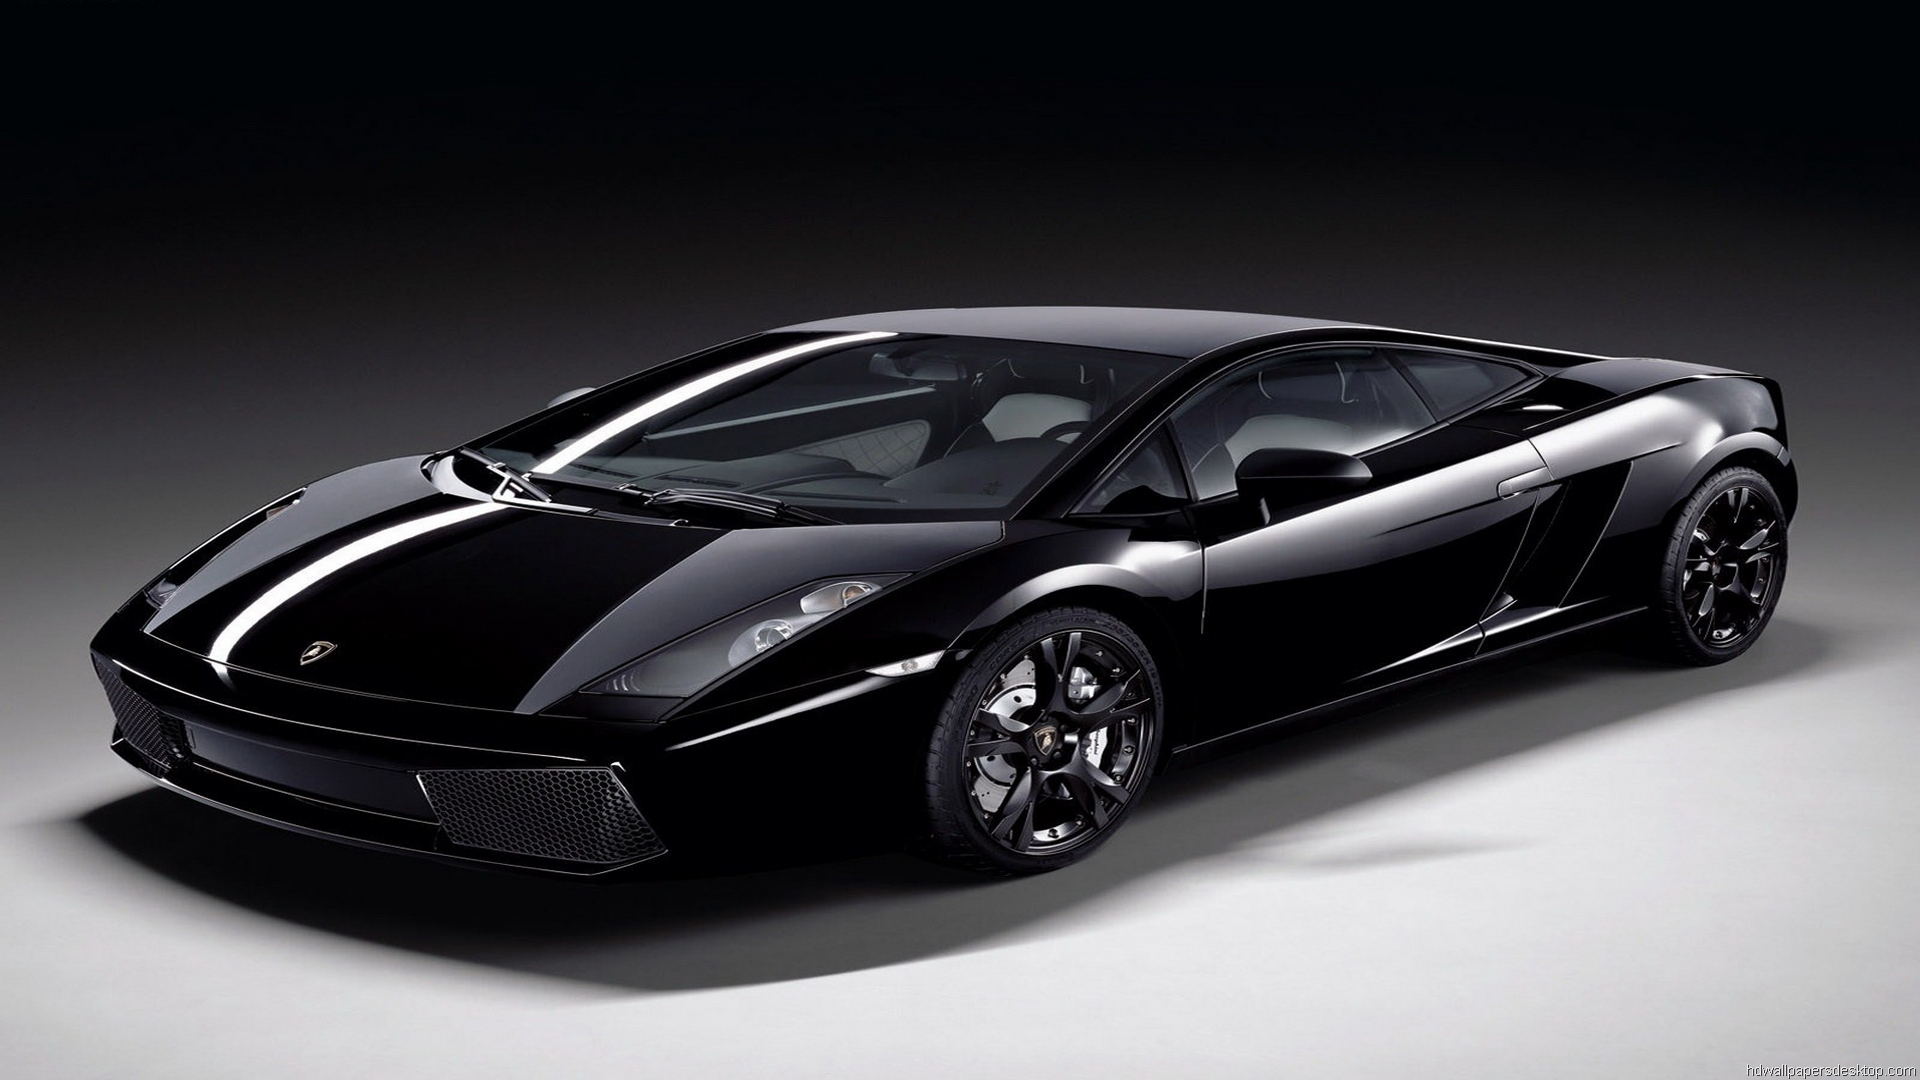 HD Wallpaper Full HD 1080p HDTV Wallpaper Lamborghini HD Wallpaper 1920x1080